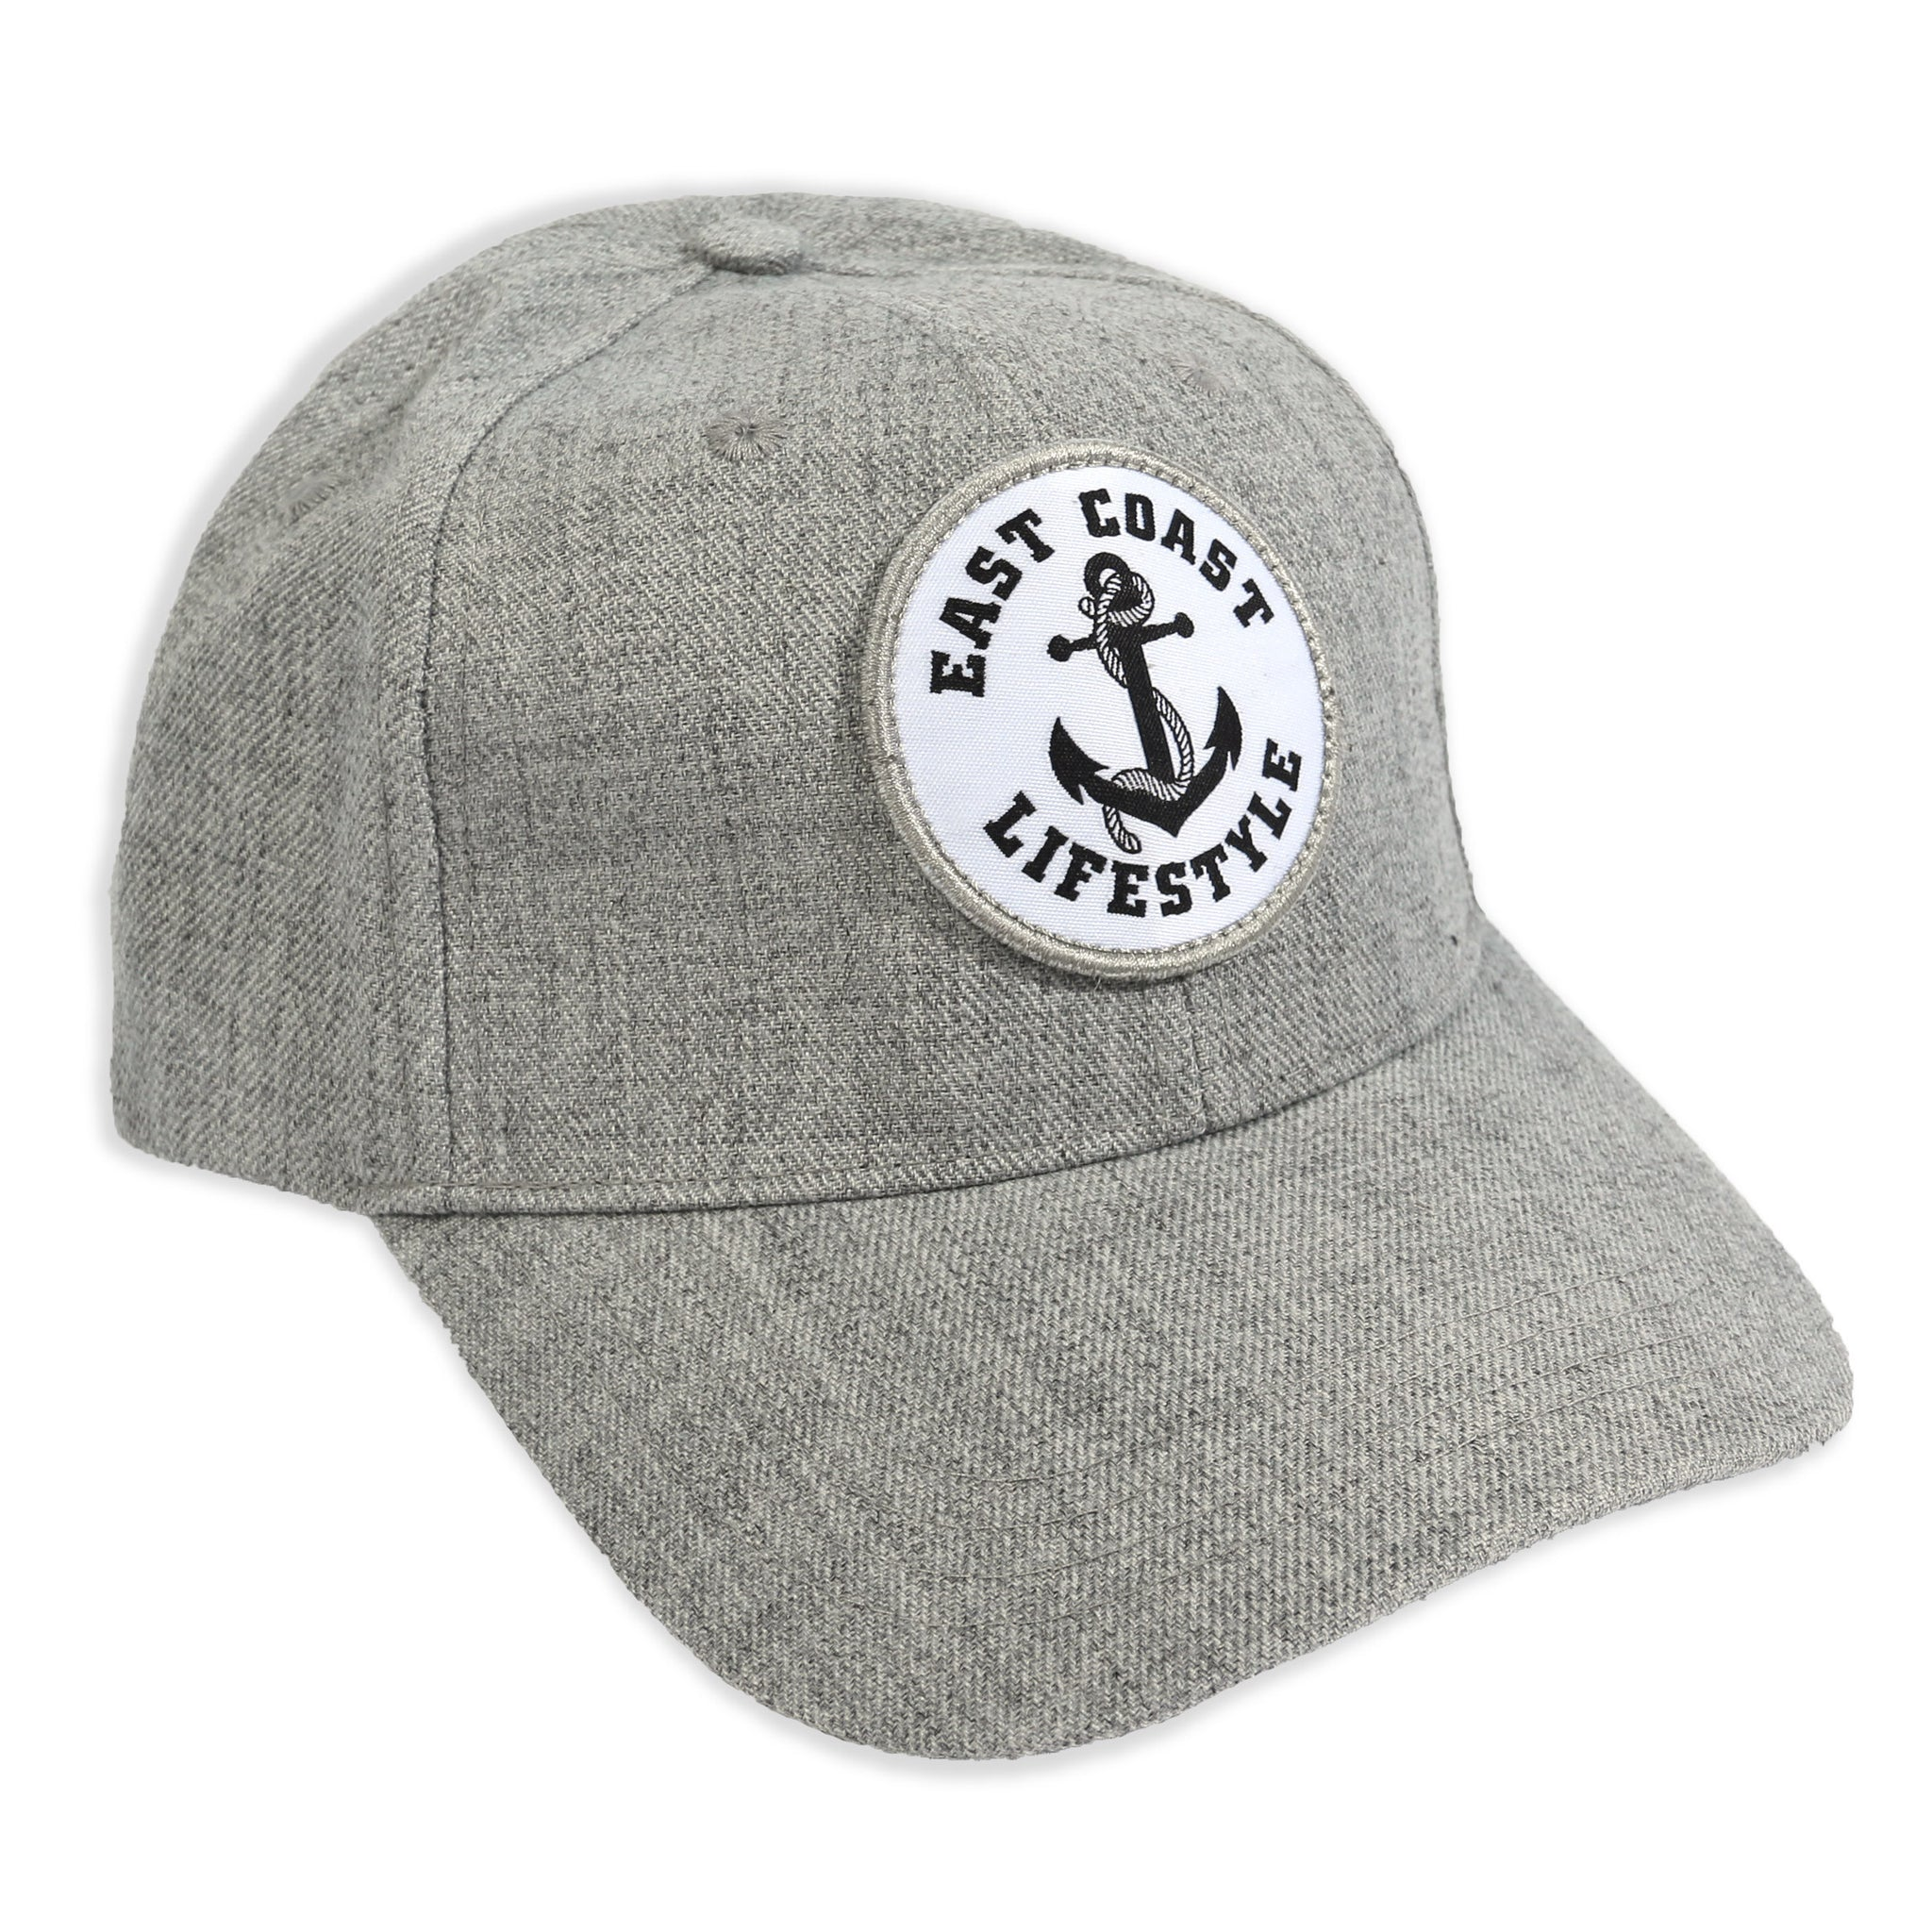 Classic Structured Dad Hat – EastCoast Lifestyle d7f2e9bd1b6